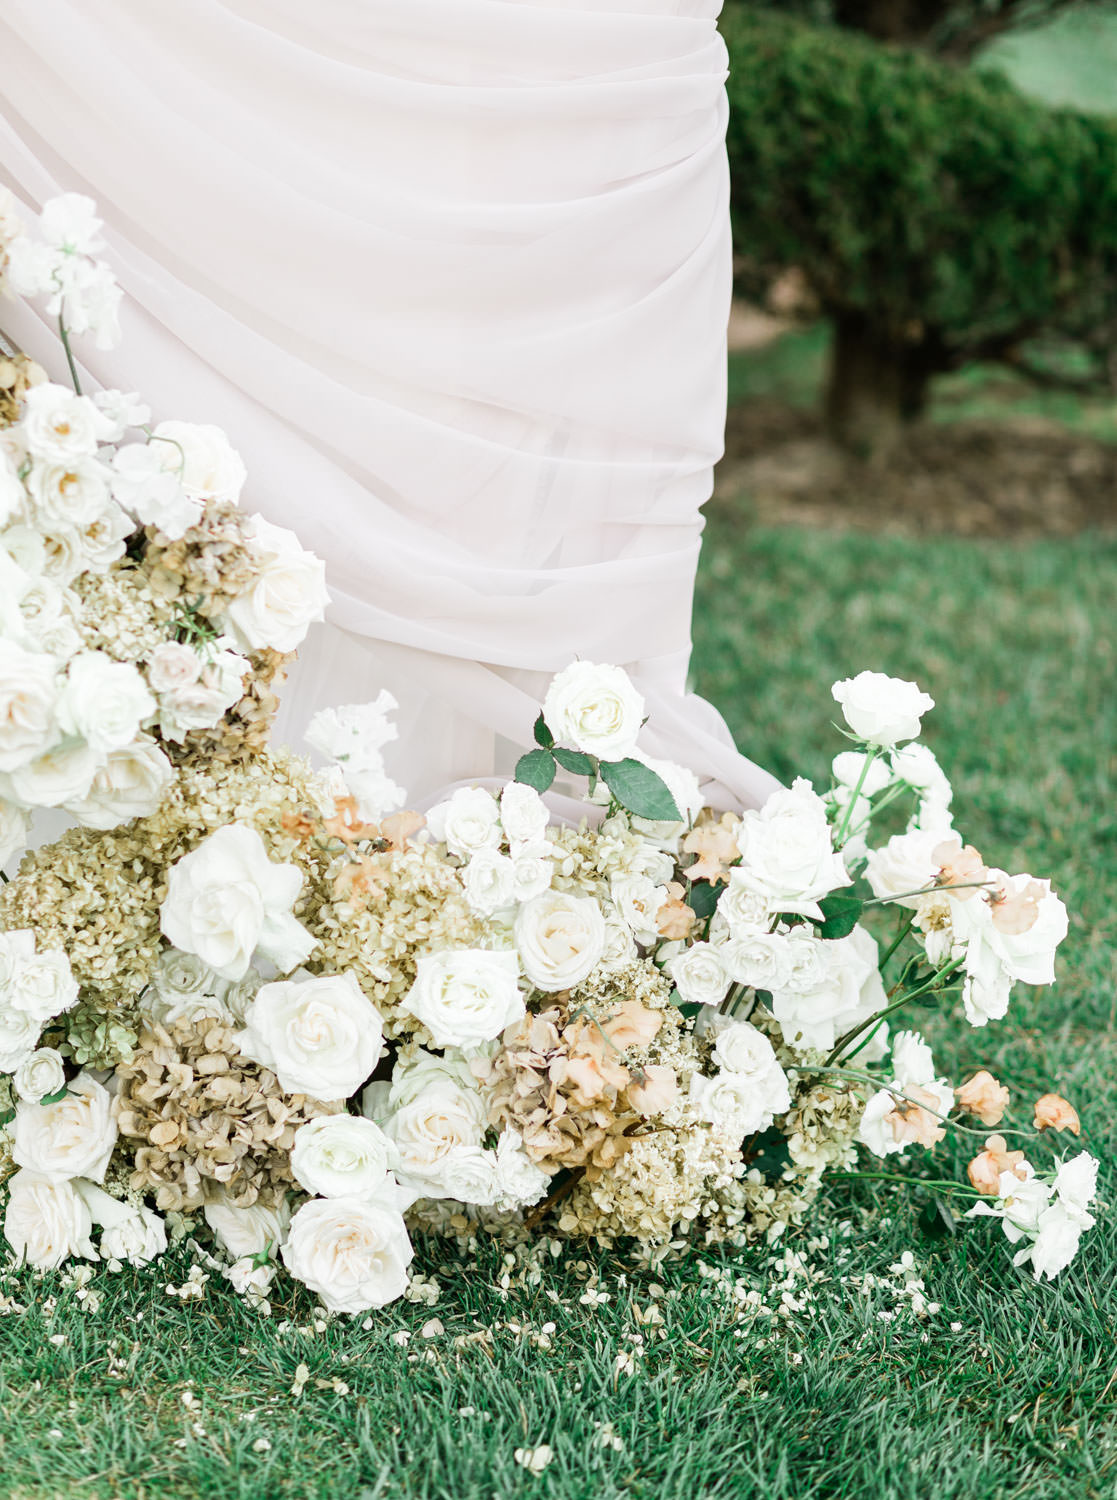 Asymmetrical floral arrangement on arch, Grand del Mar wedding ceremony on reflection lawn, Cavin Elizabeth Photography